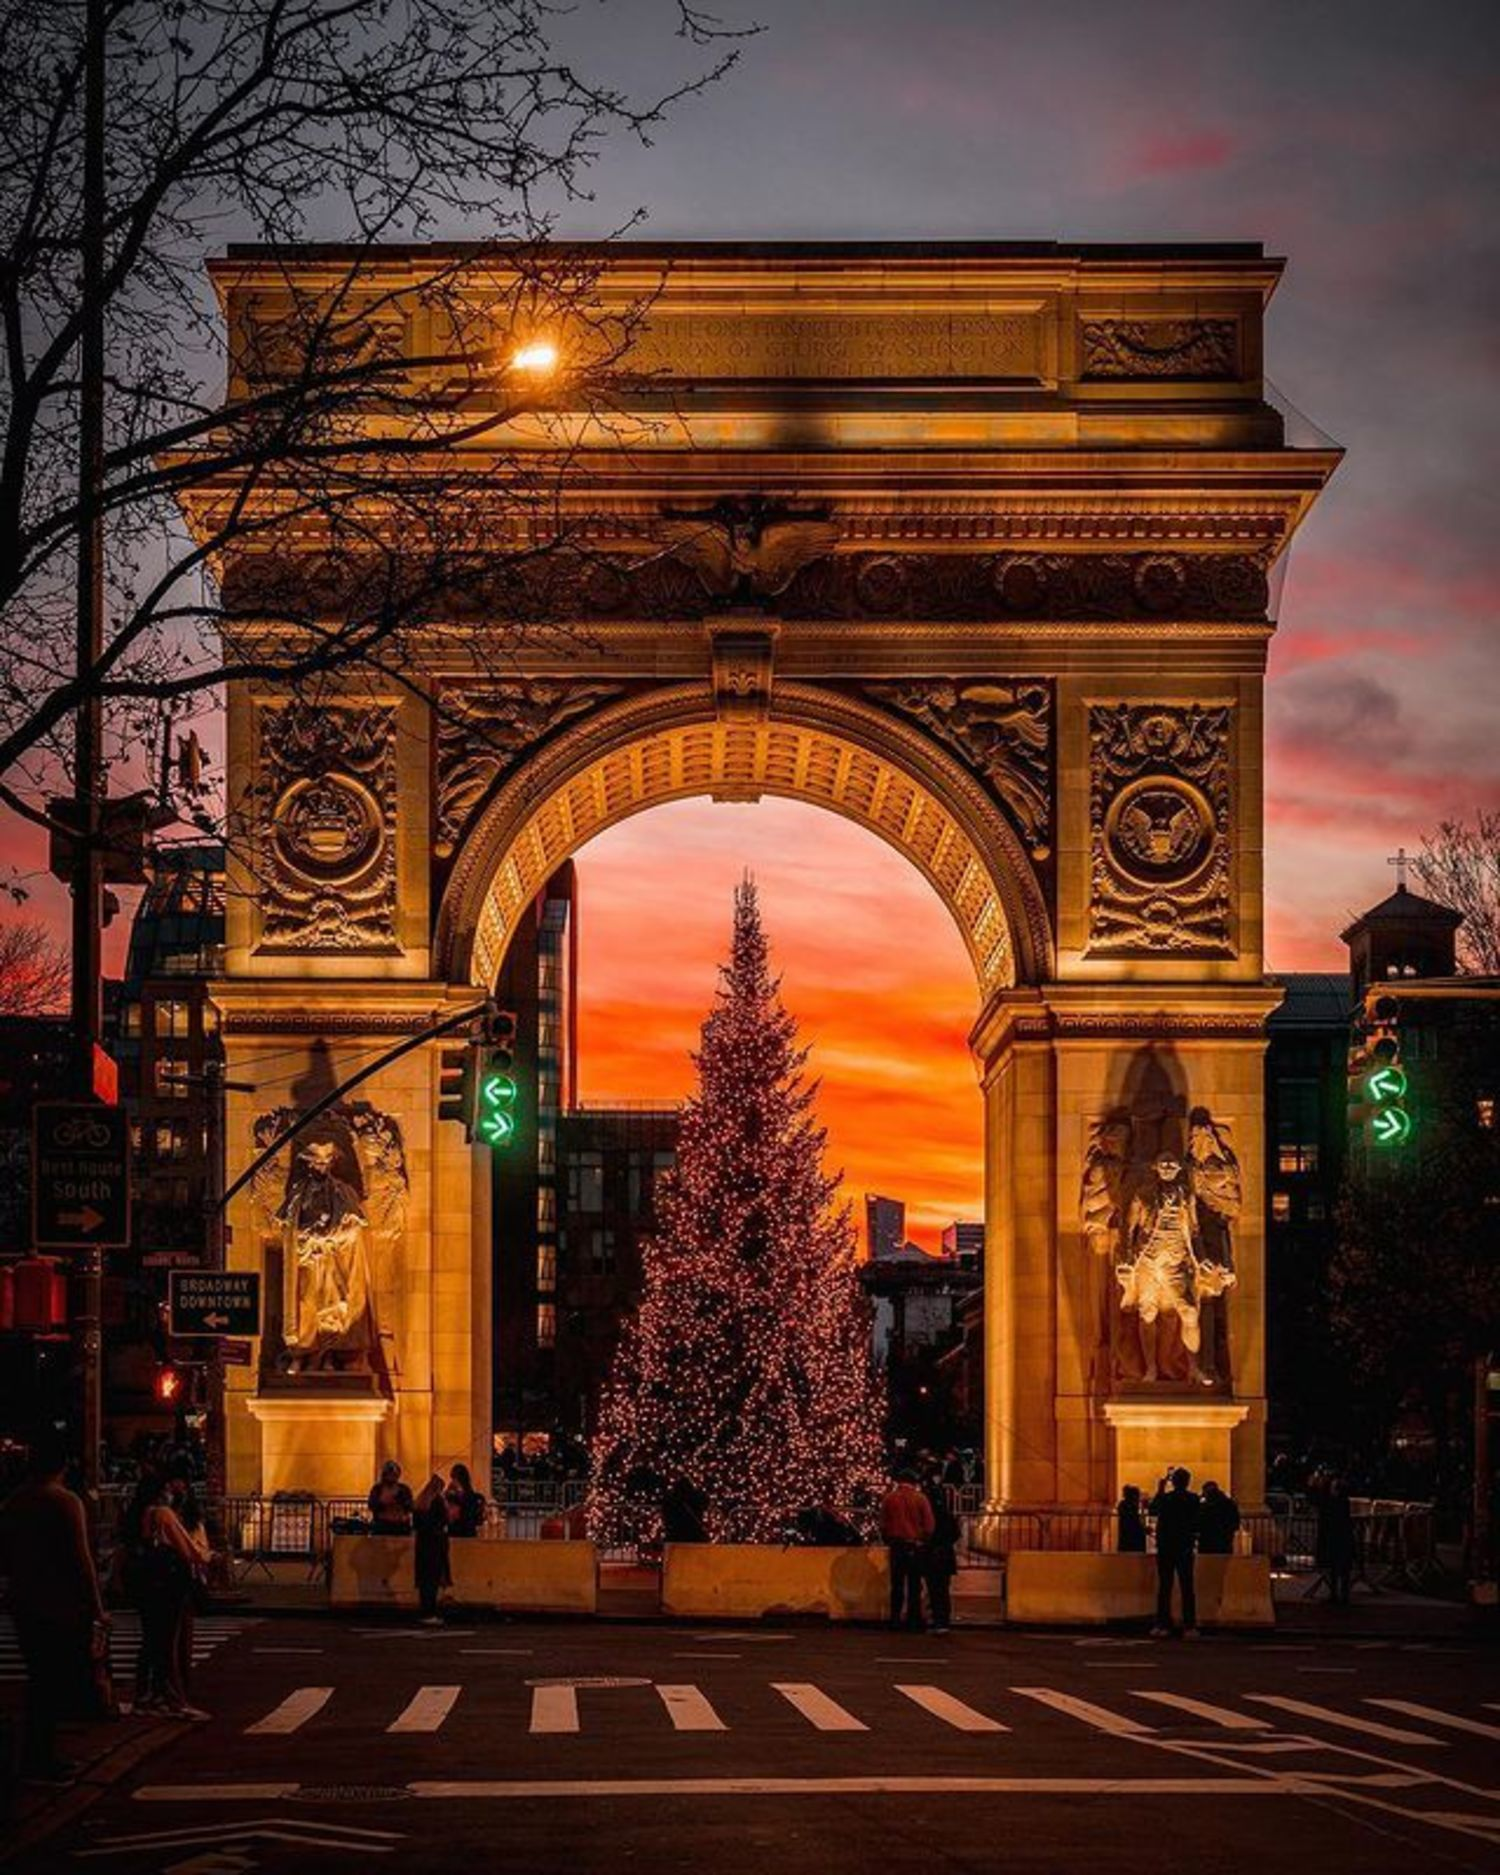 Washington Square Arch, Washington Square Park, Greenwich Village, Manhattan